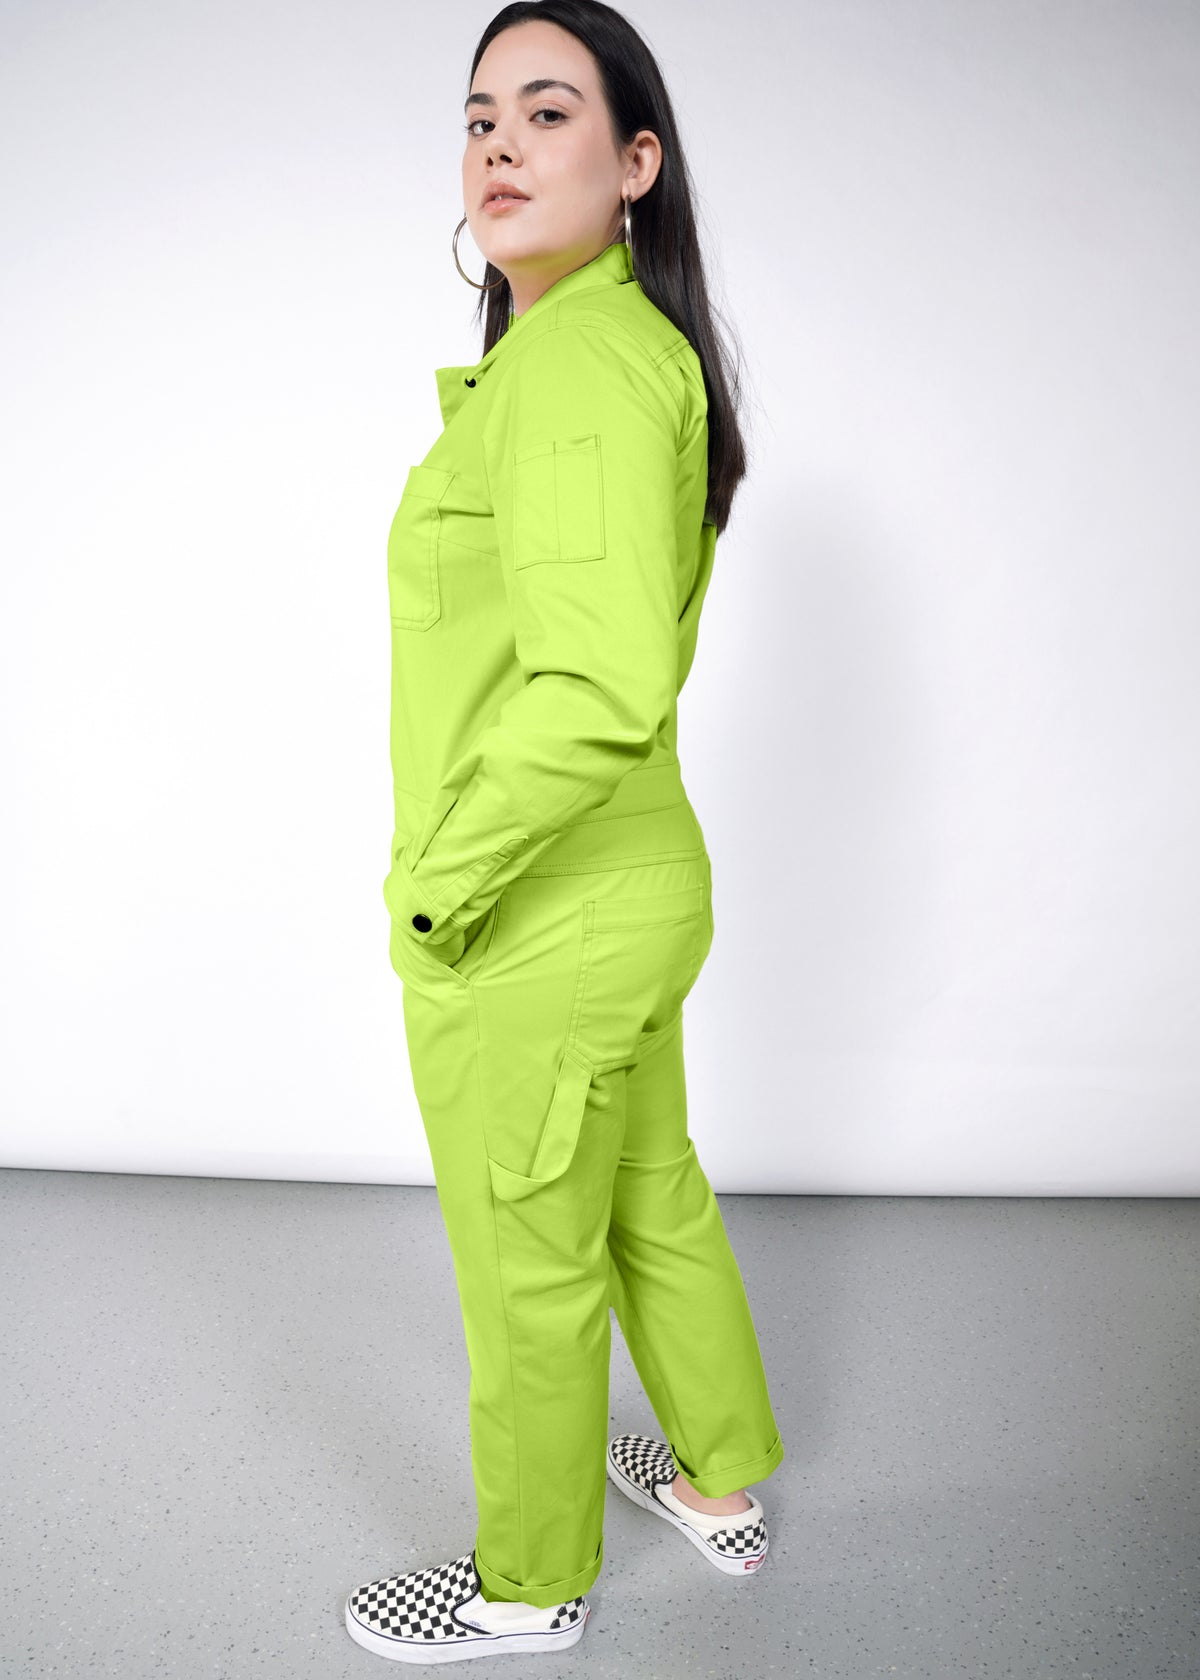 Model wearing neon green long sleeved essential coverall jumpsuit in size large, with hands in pockets, facing left